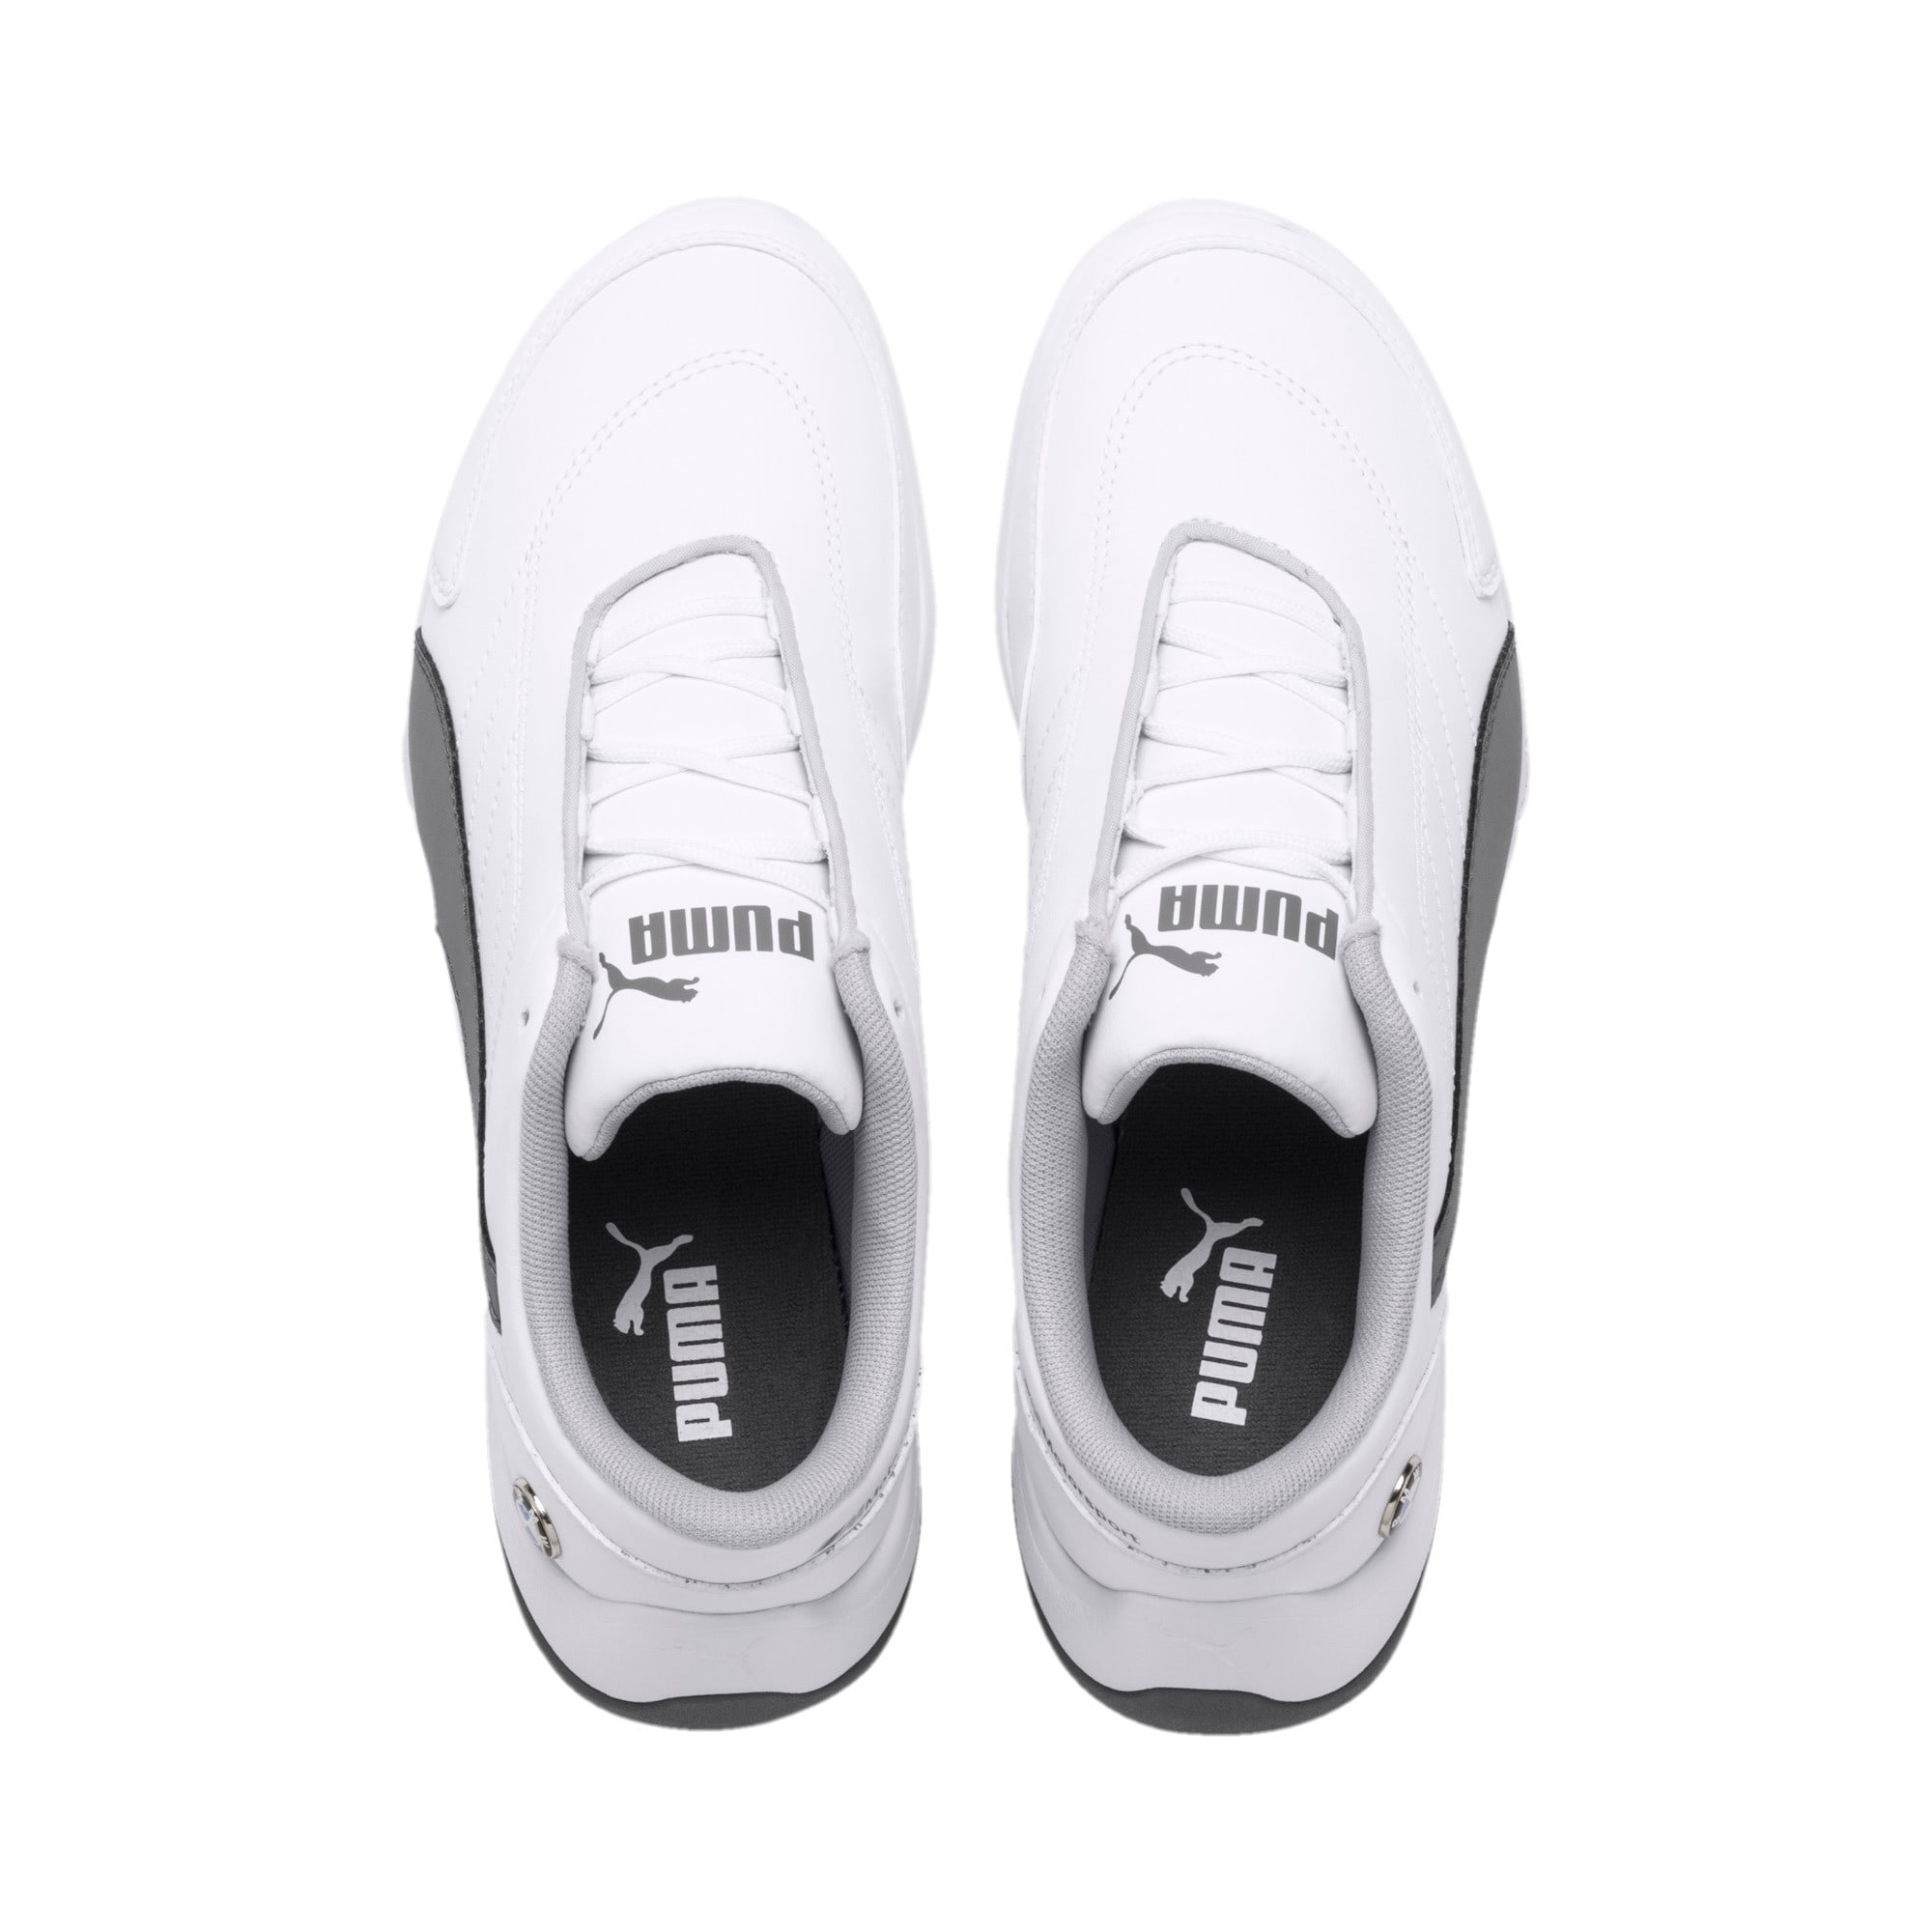 Thumbnail 6 of BMW M Kart Cat III Youth Trainers, Puma White-Smoked Pearl, medium-IND